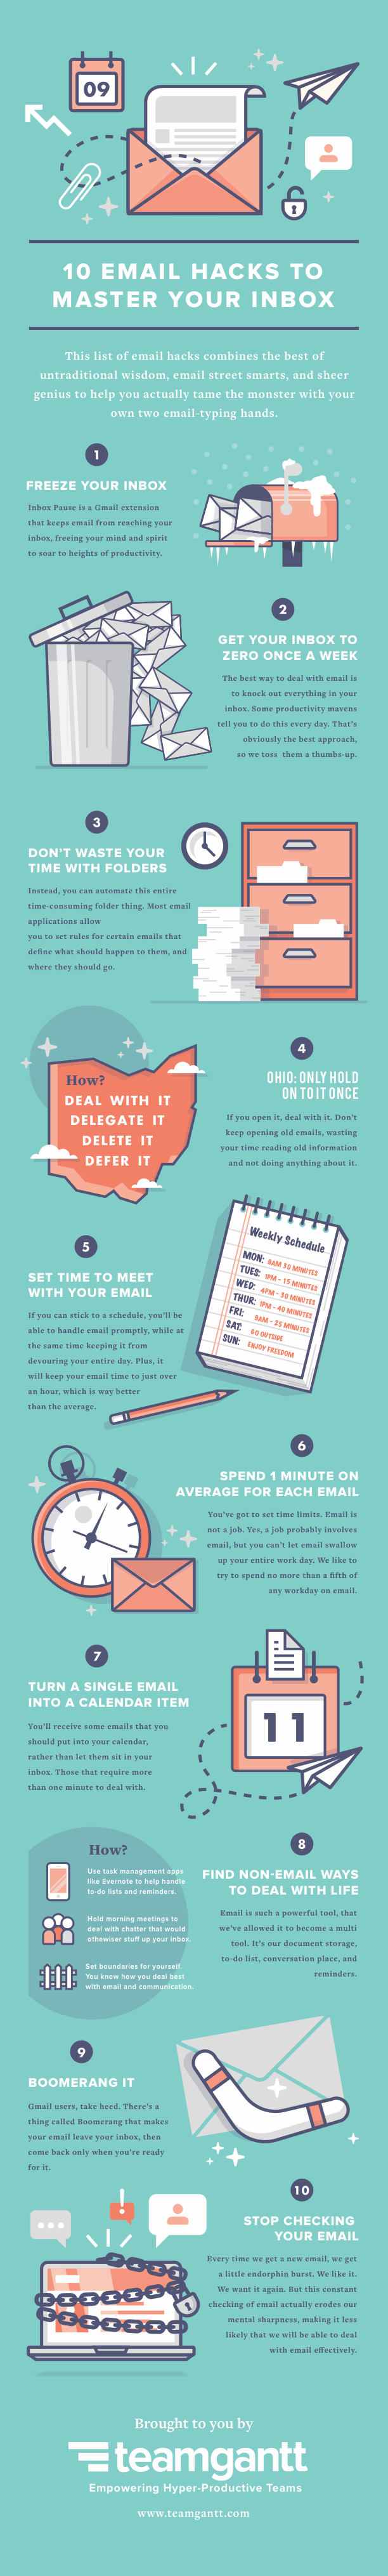 Email productivity hack infographic by TeamGantt